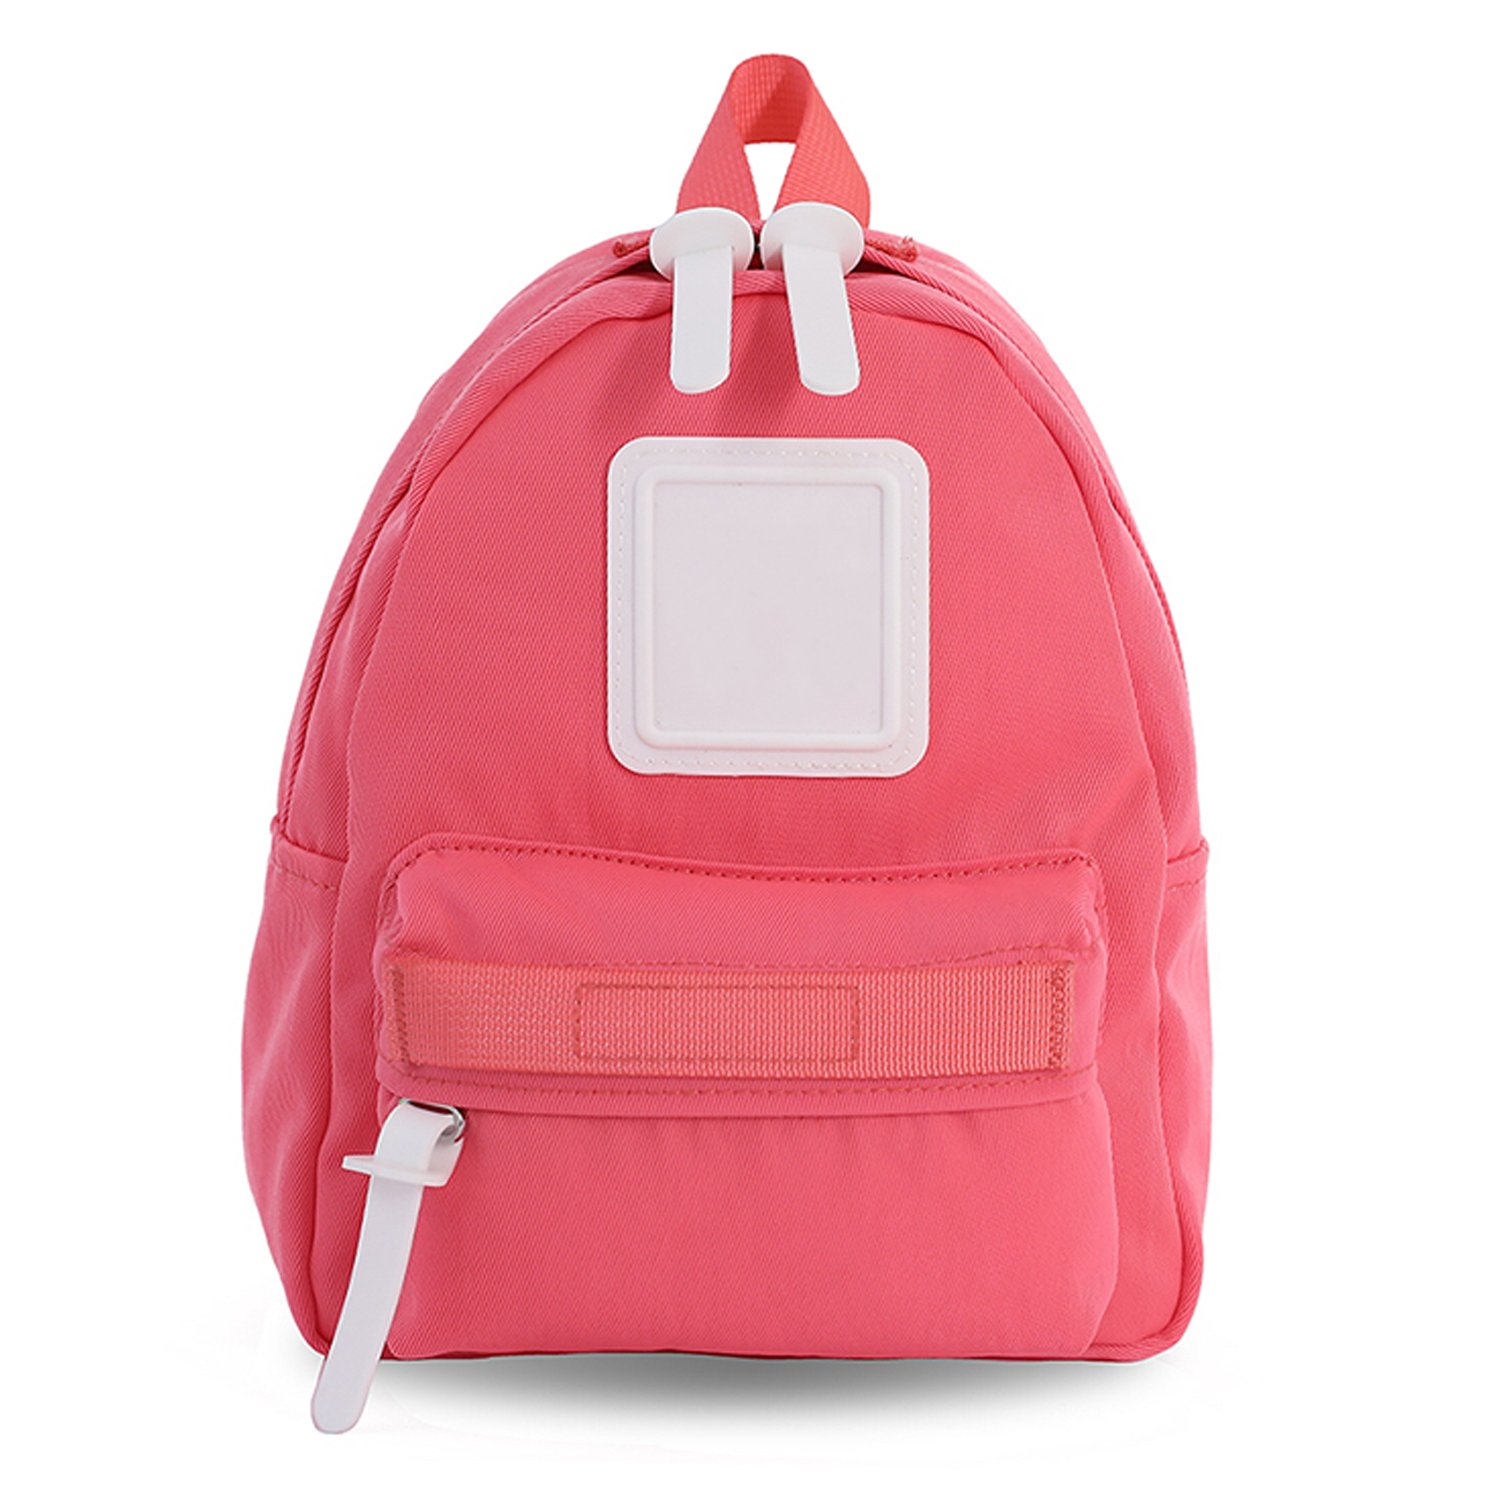 Mini Backpack For Women, Girls, Toddlers, ; Popular as a Purse, Diaper Bag, Miniature IPad or Daypack - Coral